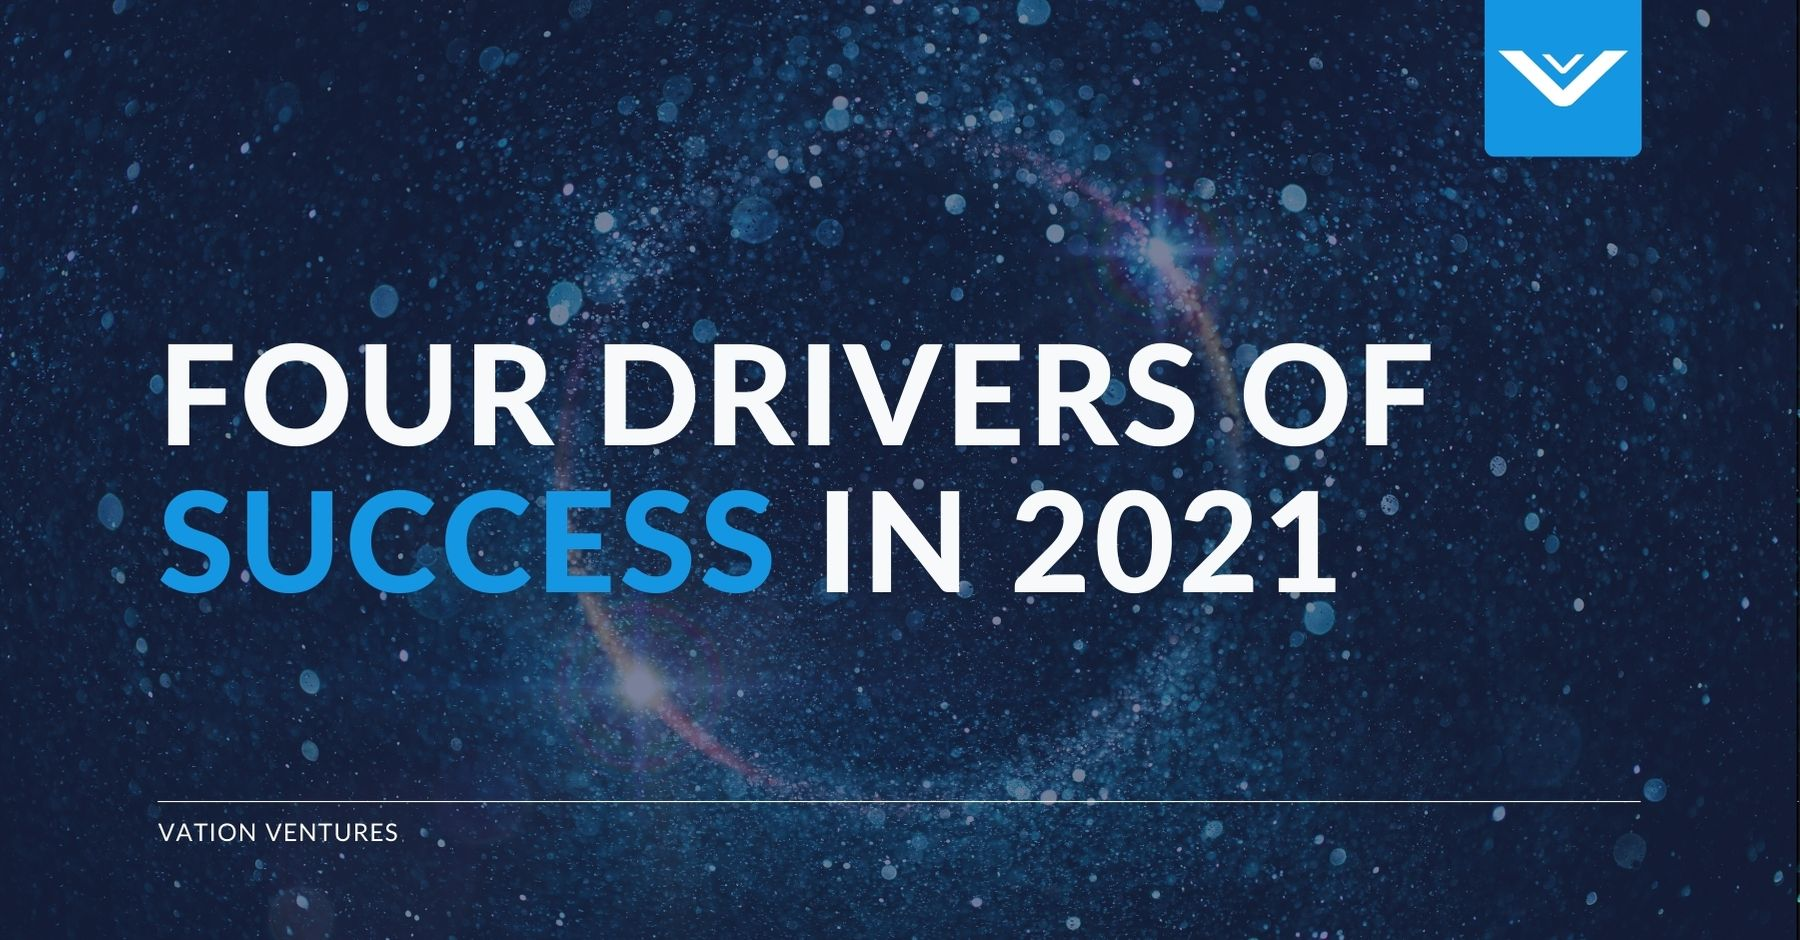 The Four Drivers of Success In 2021